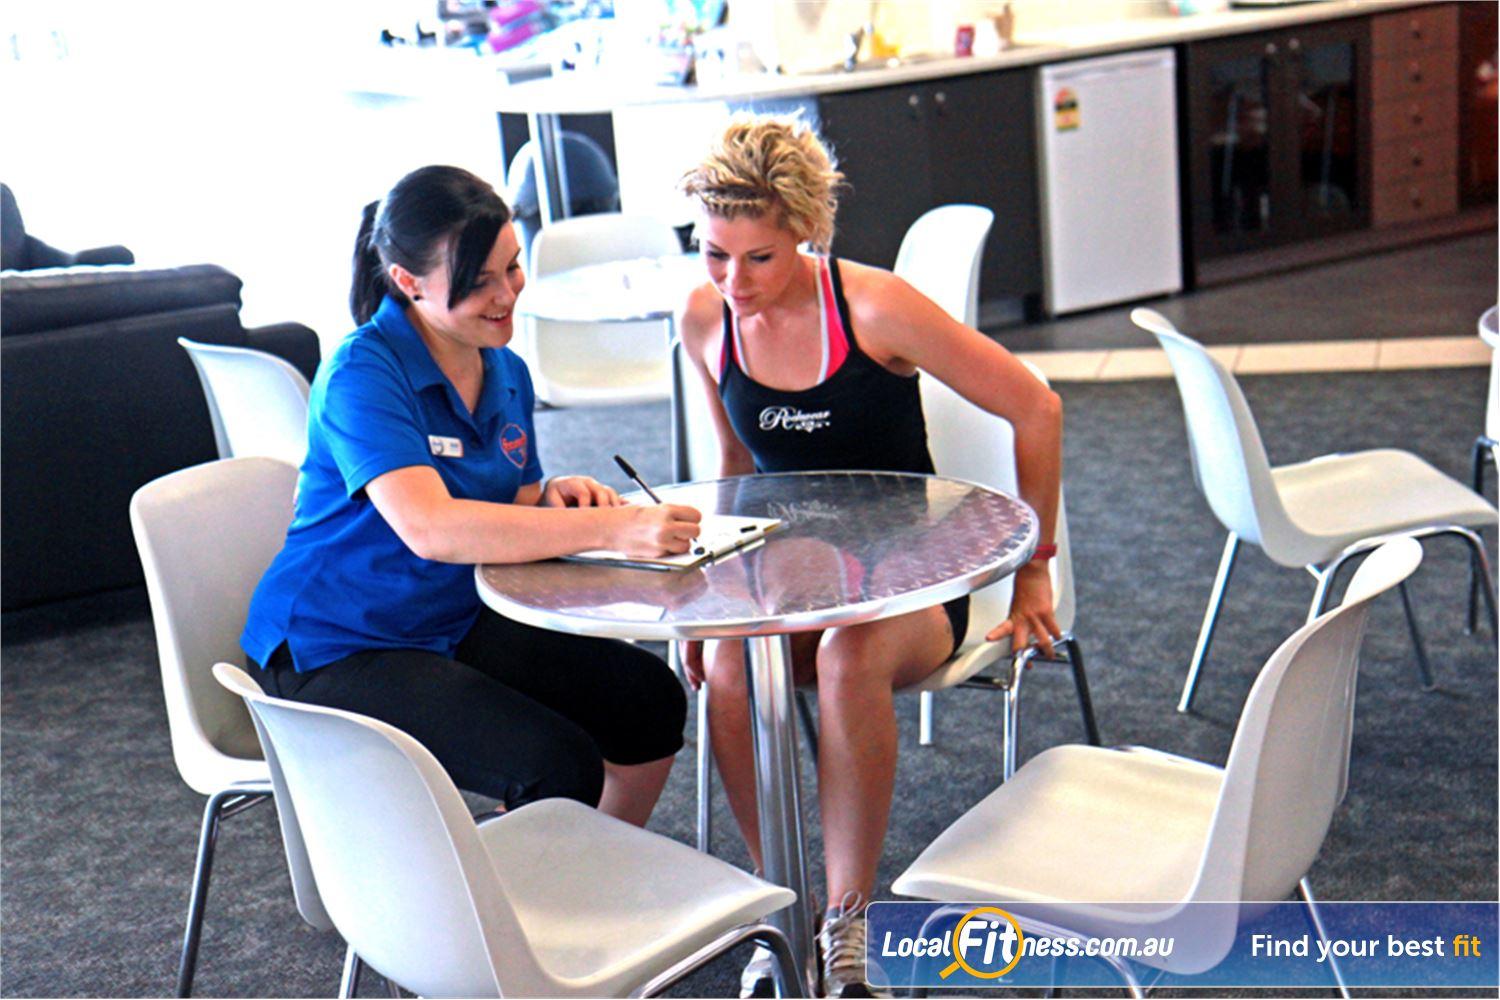 Goodlife Health Clubs Morningside Morningside personal trainers specialise in weight-loss and strength training.